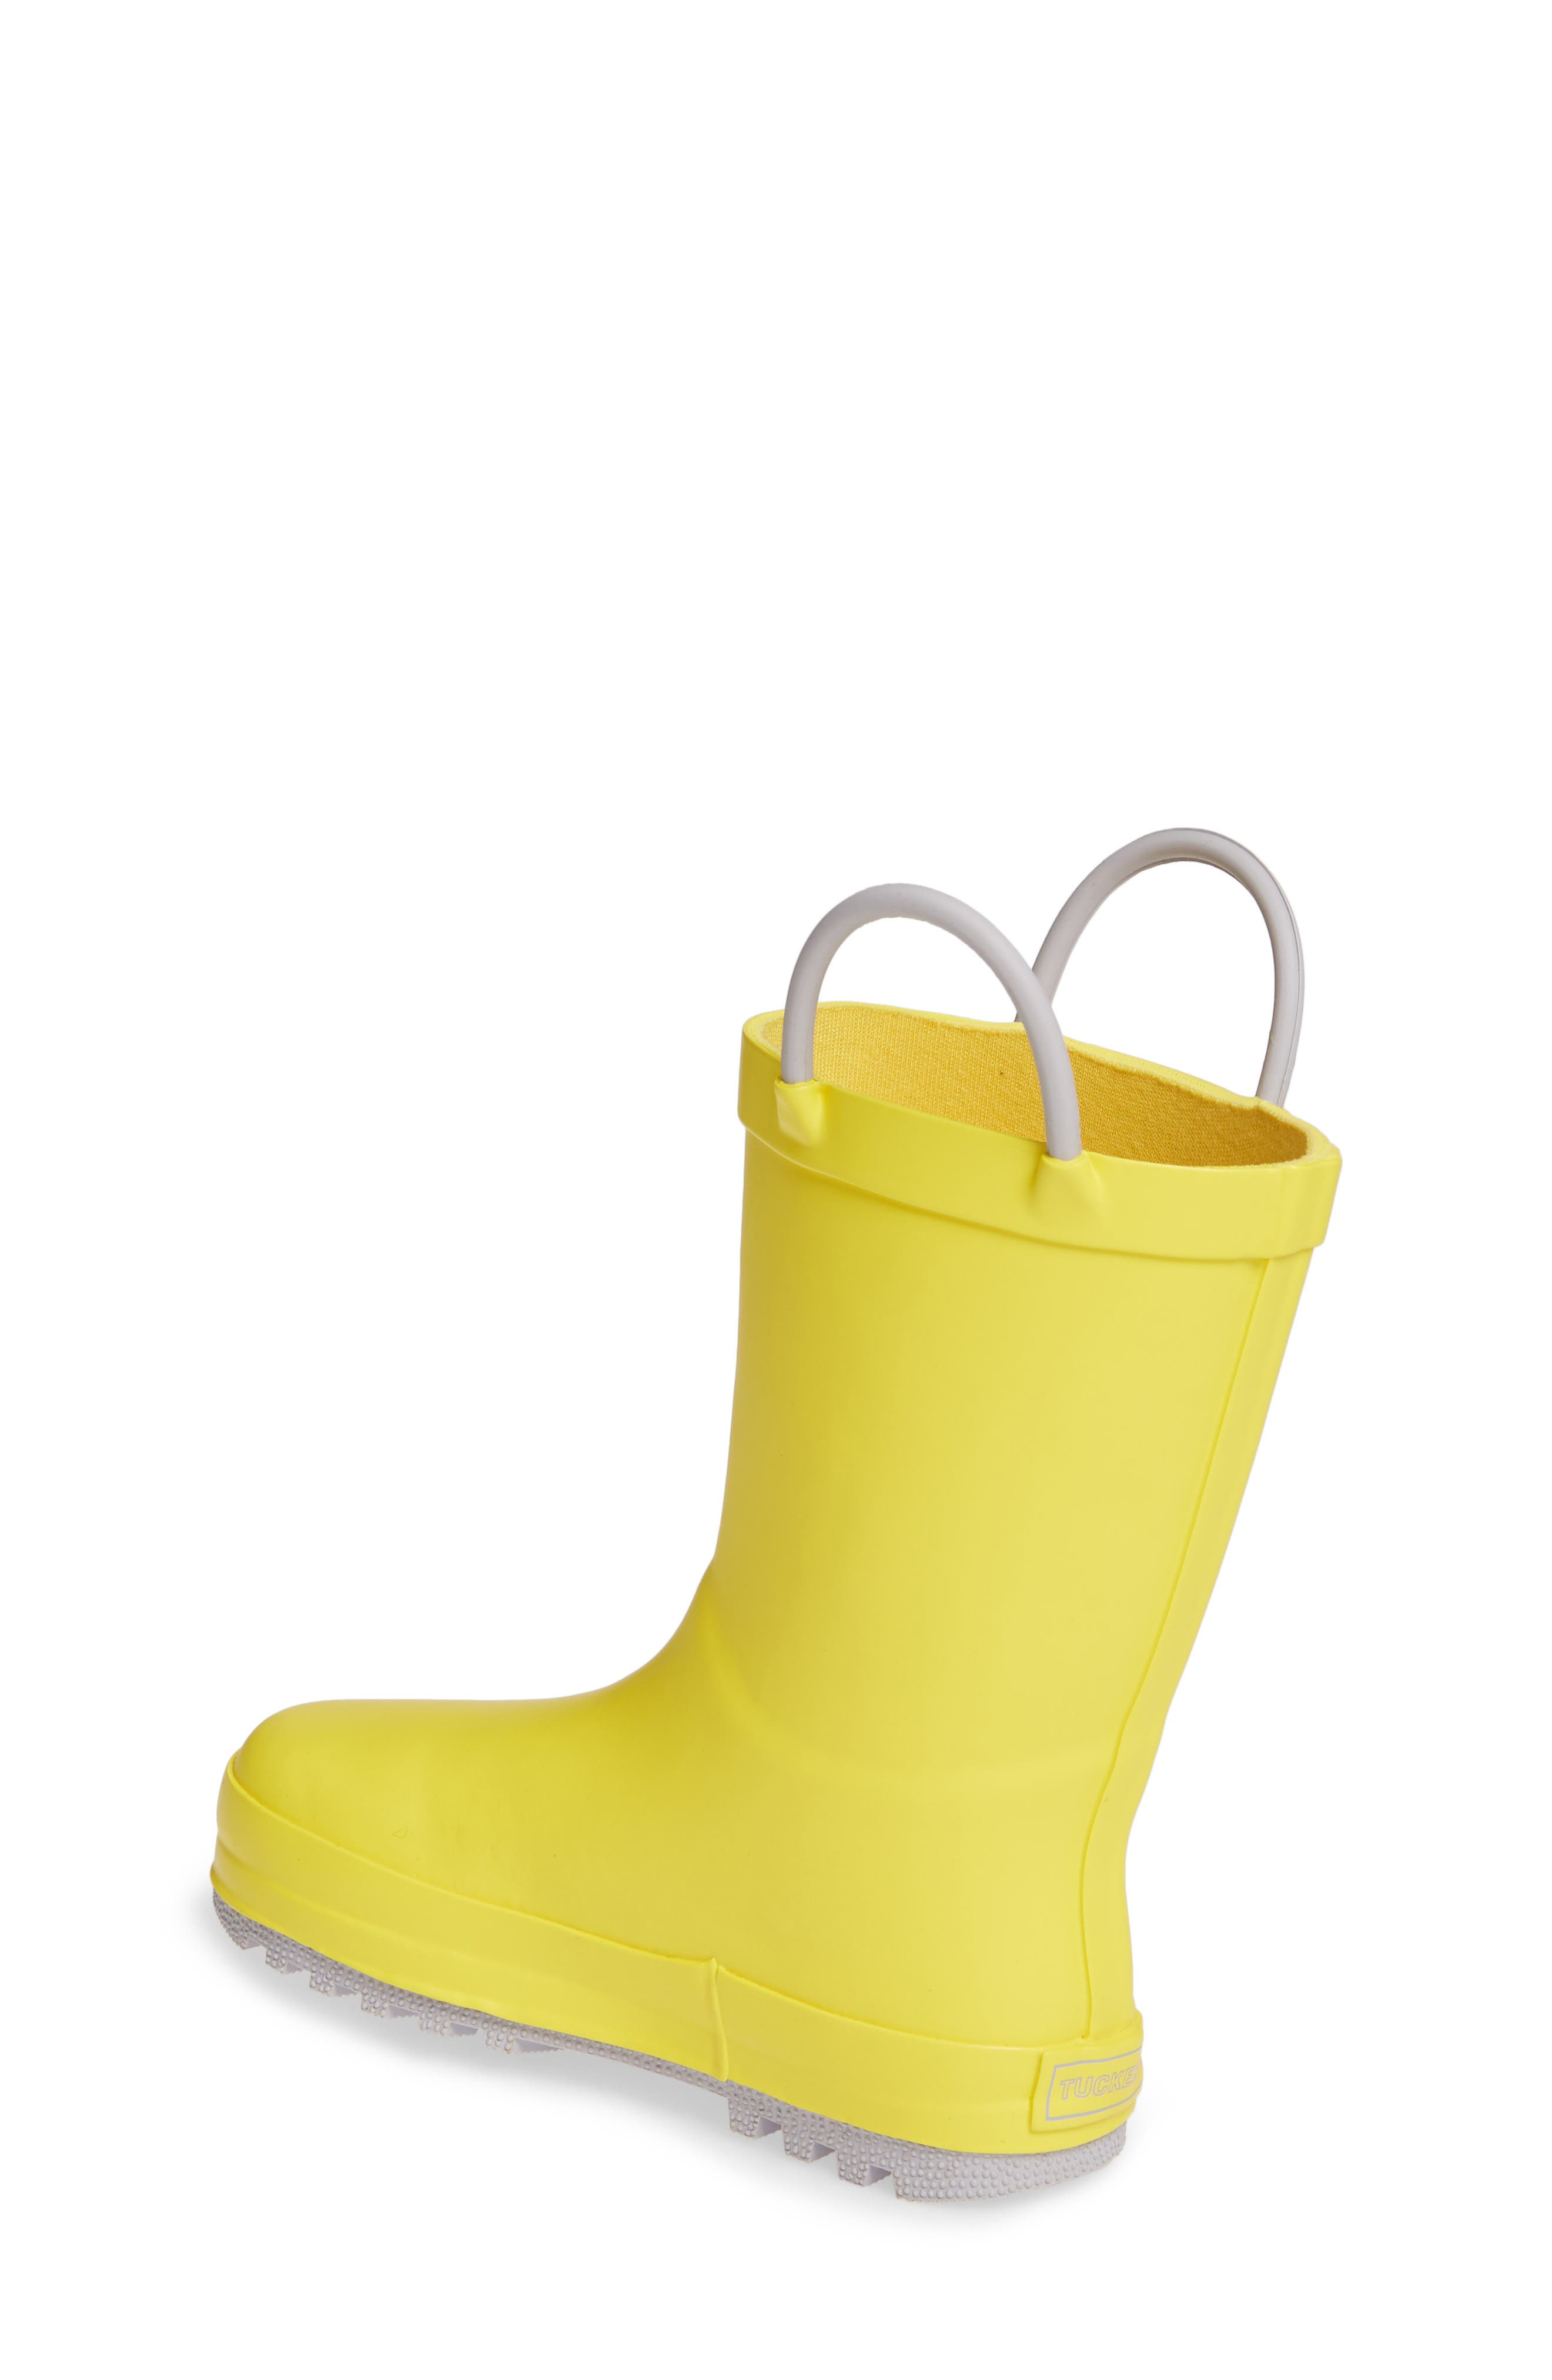 TUCKER + TATE, Puddle Rain Boot, Alternate thumbnail 2, color, YELLOW/ GREY RUBBER